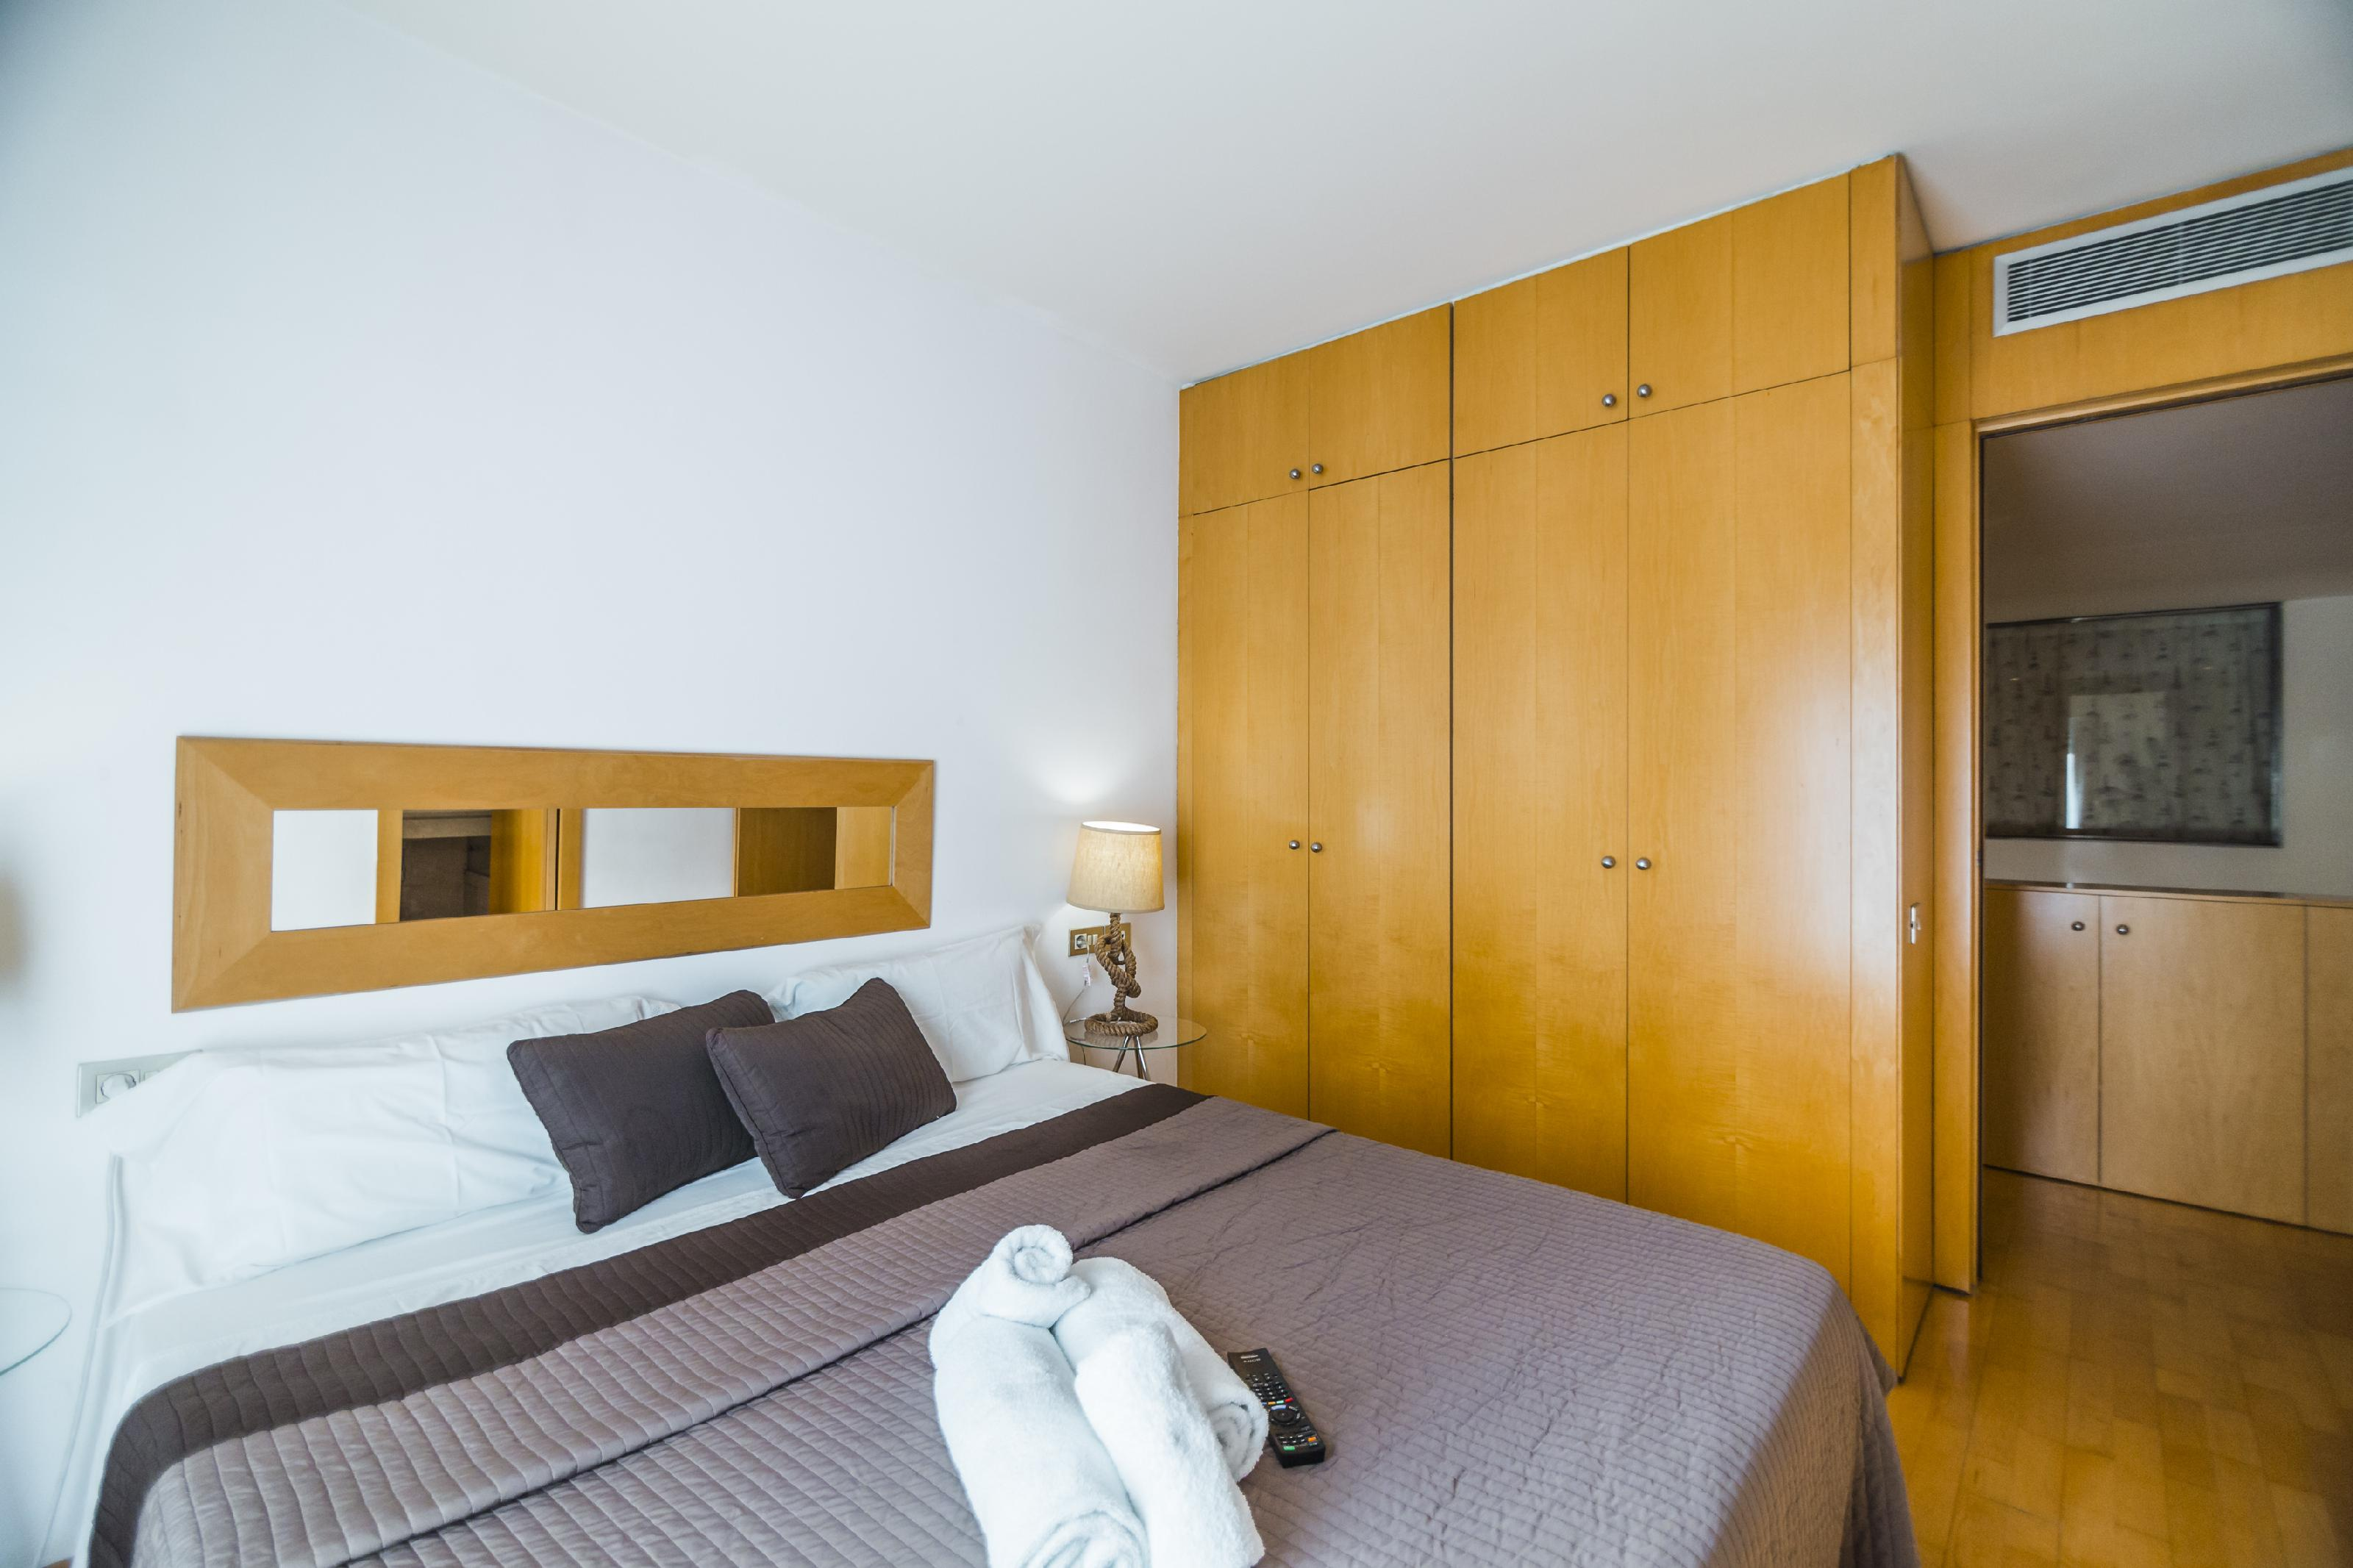 109651 Apartment for sale in Eixample, Dreta Eixample 24